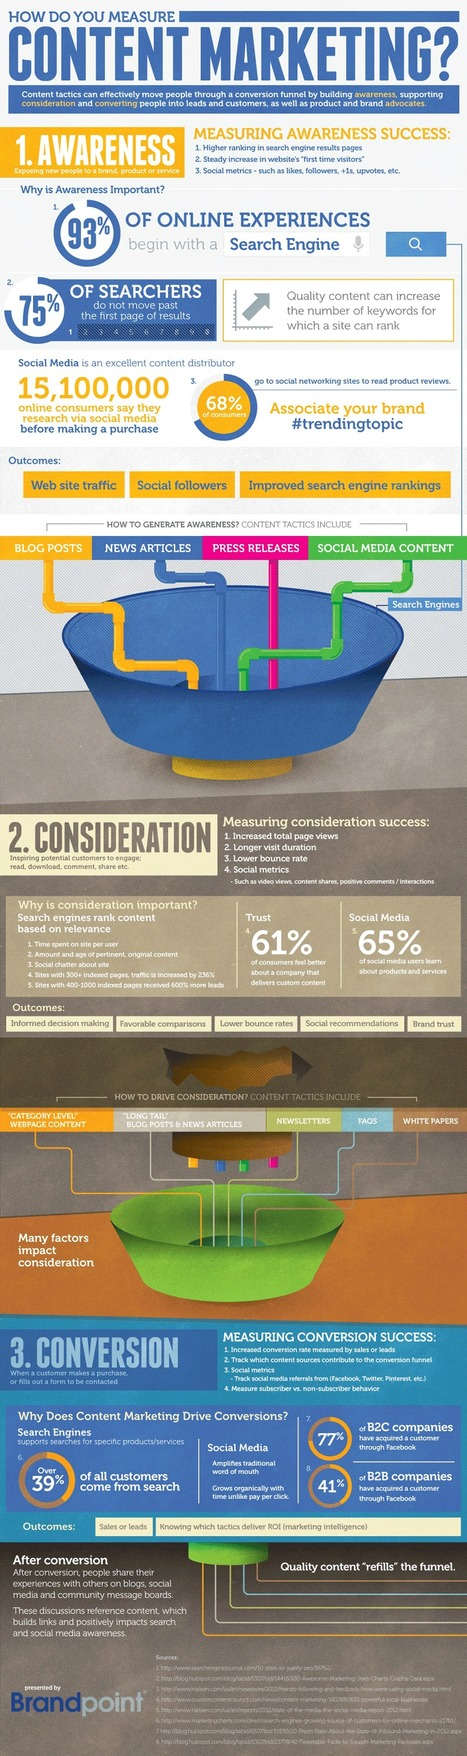 How to Measure Content Marketing Success | Infographic | Social Media Useful Info | Scoop.it